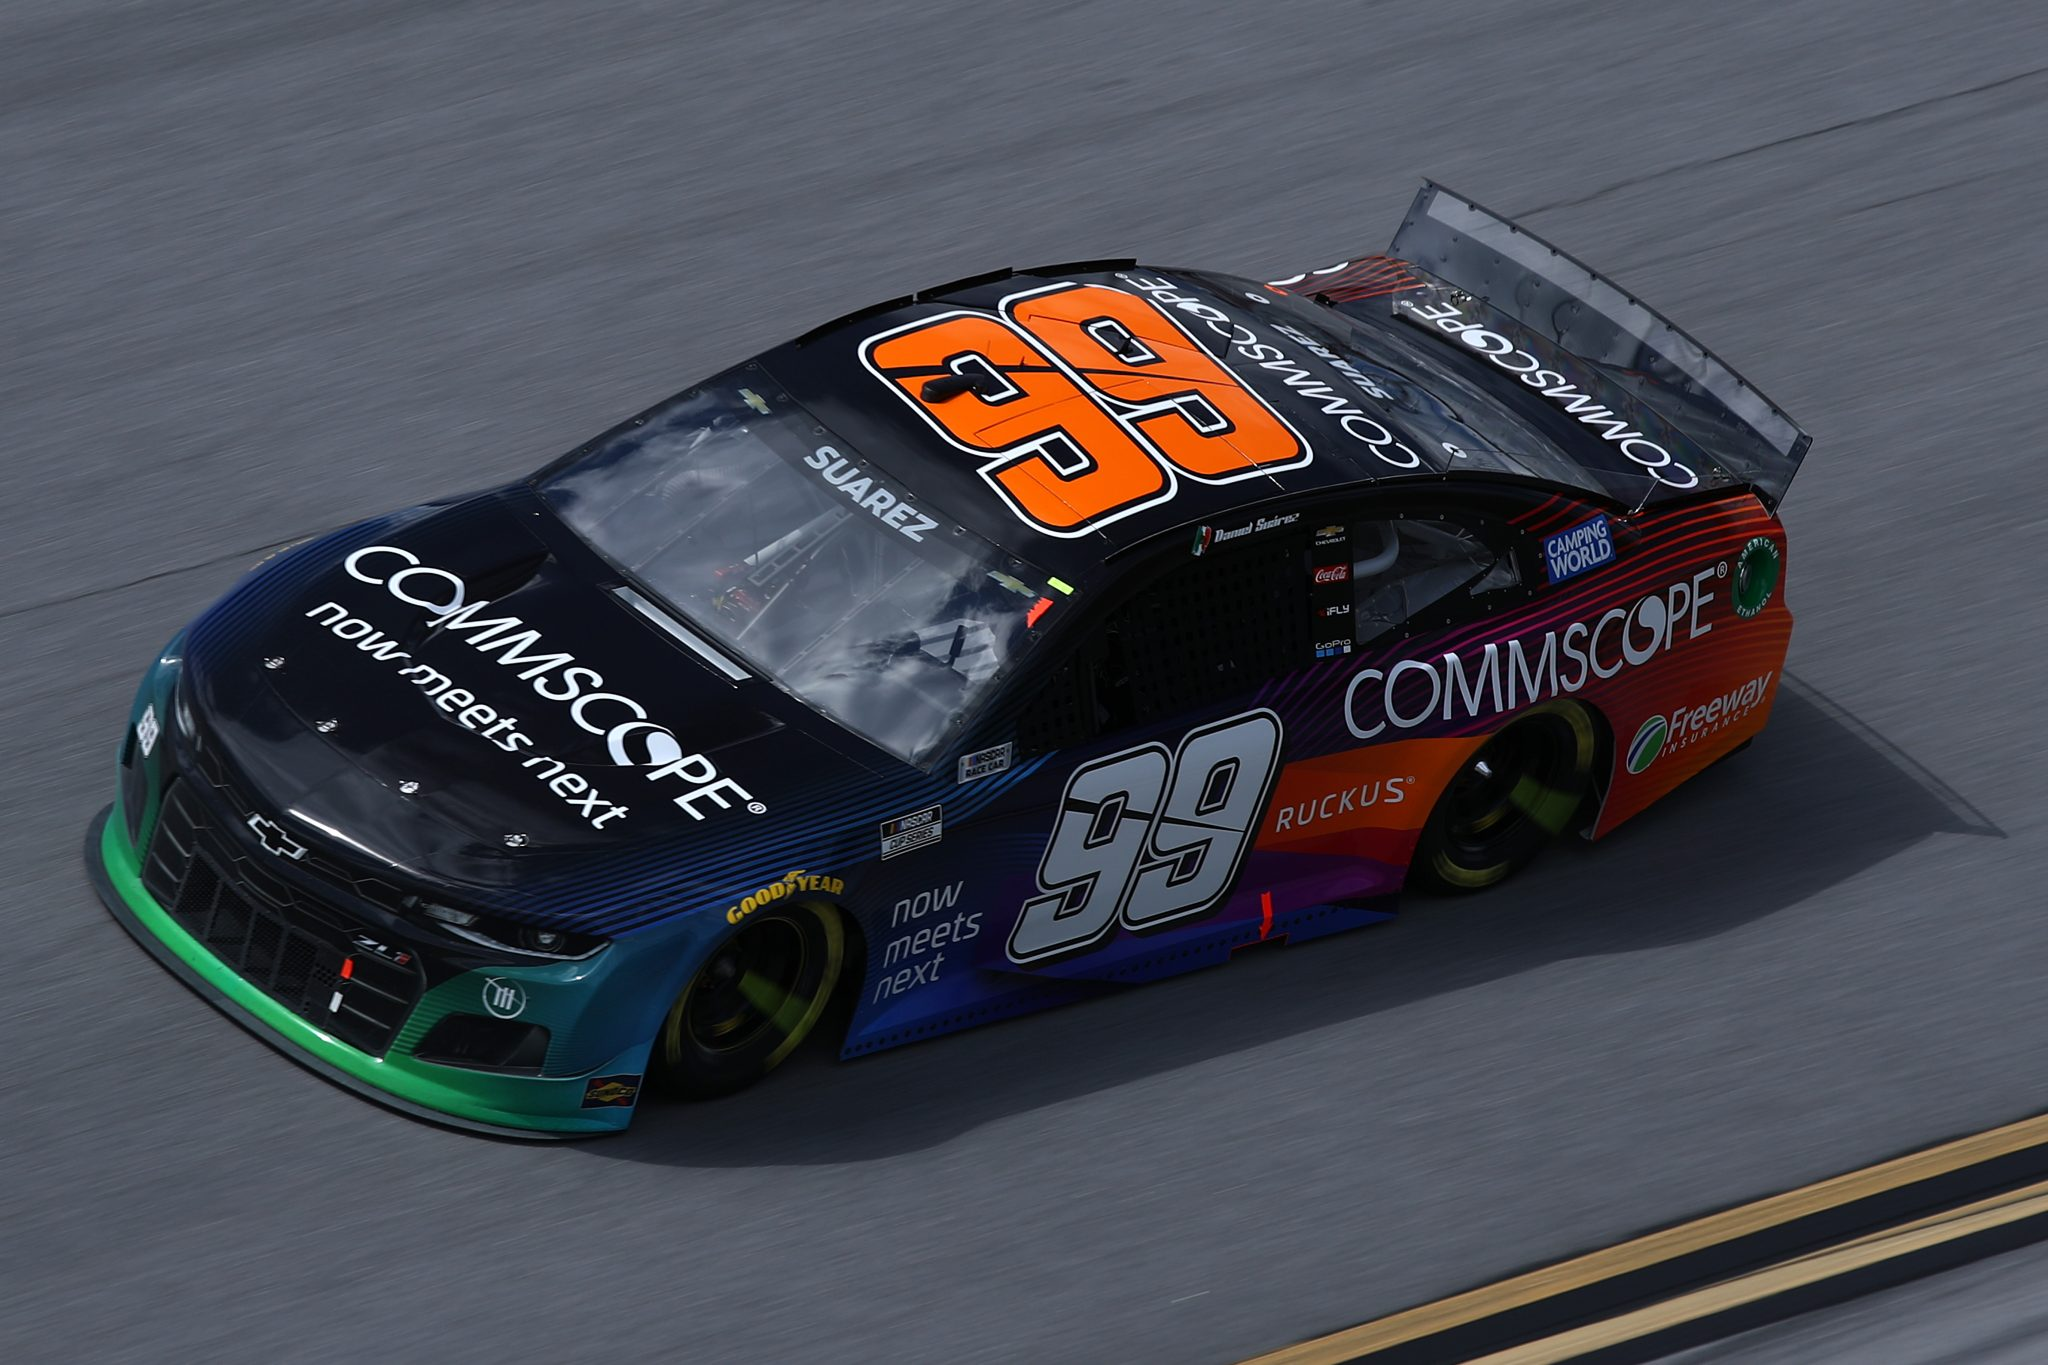 TALLADEGA, ALABAMA - APRIL 25: Daniel Suarez, driver of the #99 CommScope Chevrolet, drives during the NASCAR Cup Series GEICO 500 at Talladega Superspeedway on April 25, 2021 in Talladega, Alabama. (Photo by Sean Gardner/Getty Images) | Getty Images